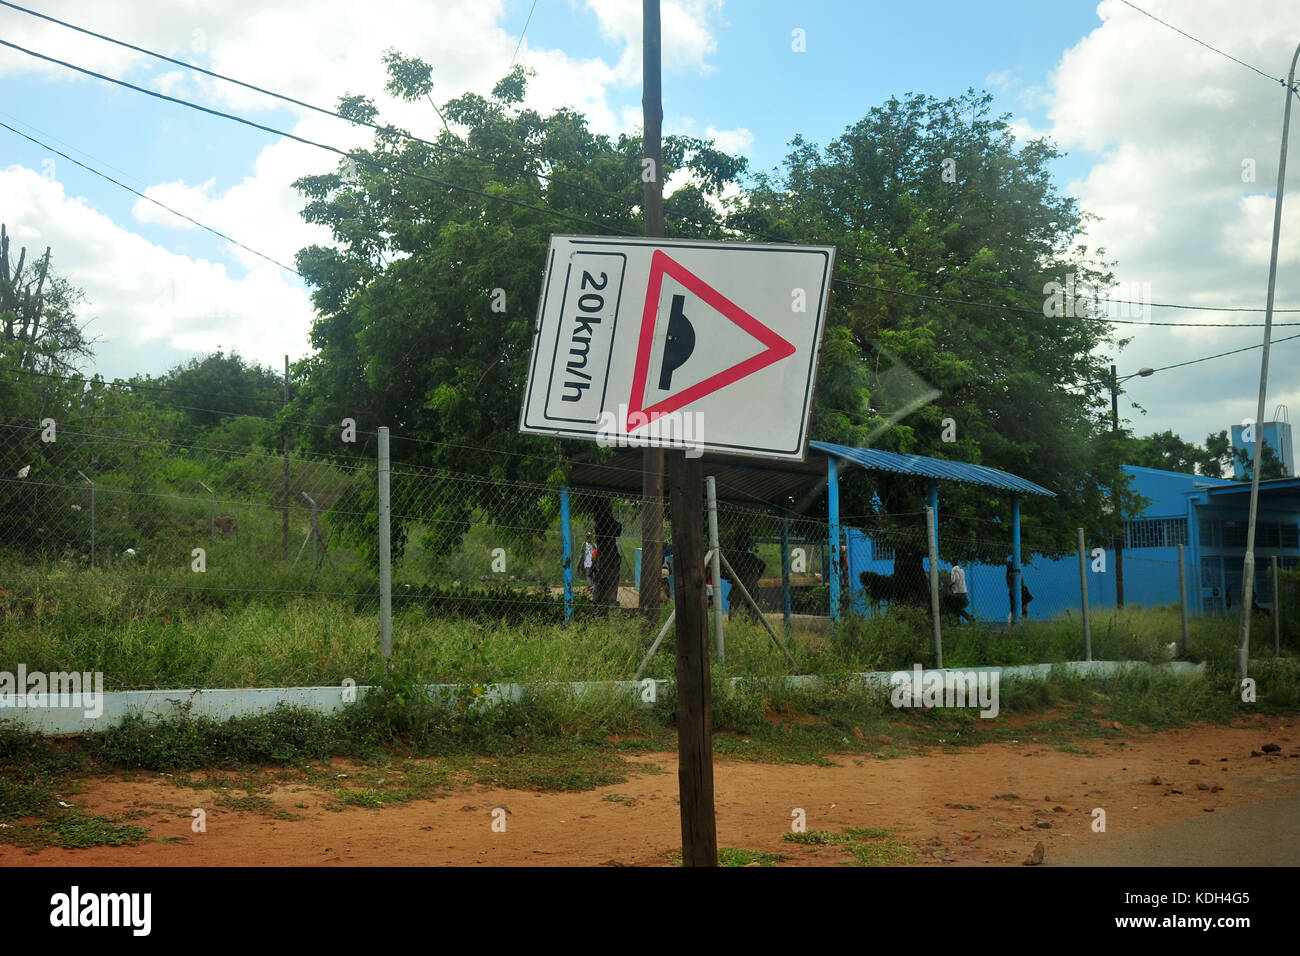 A speed limit sign turned sideways in South Africa. Stock Photo